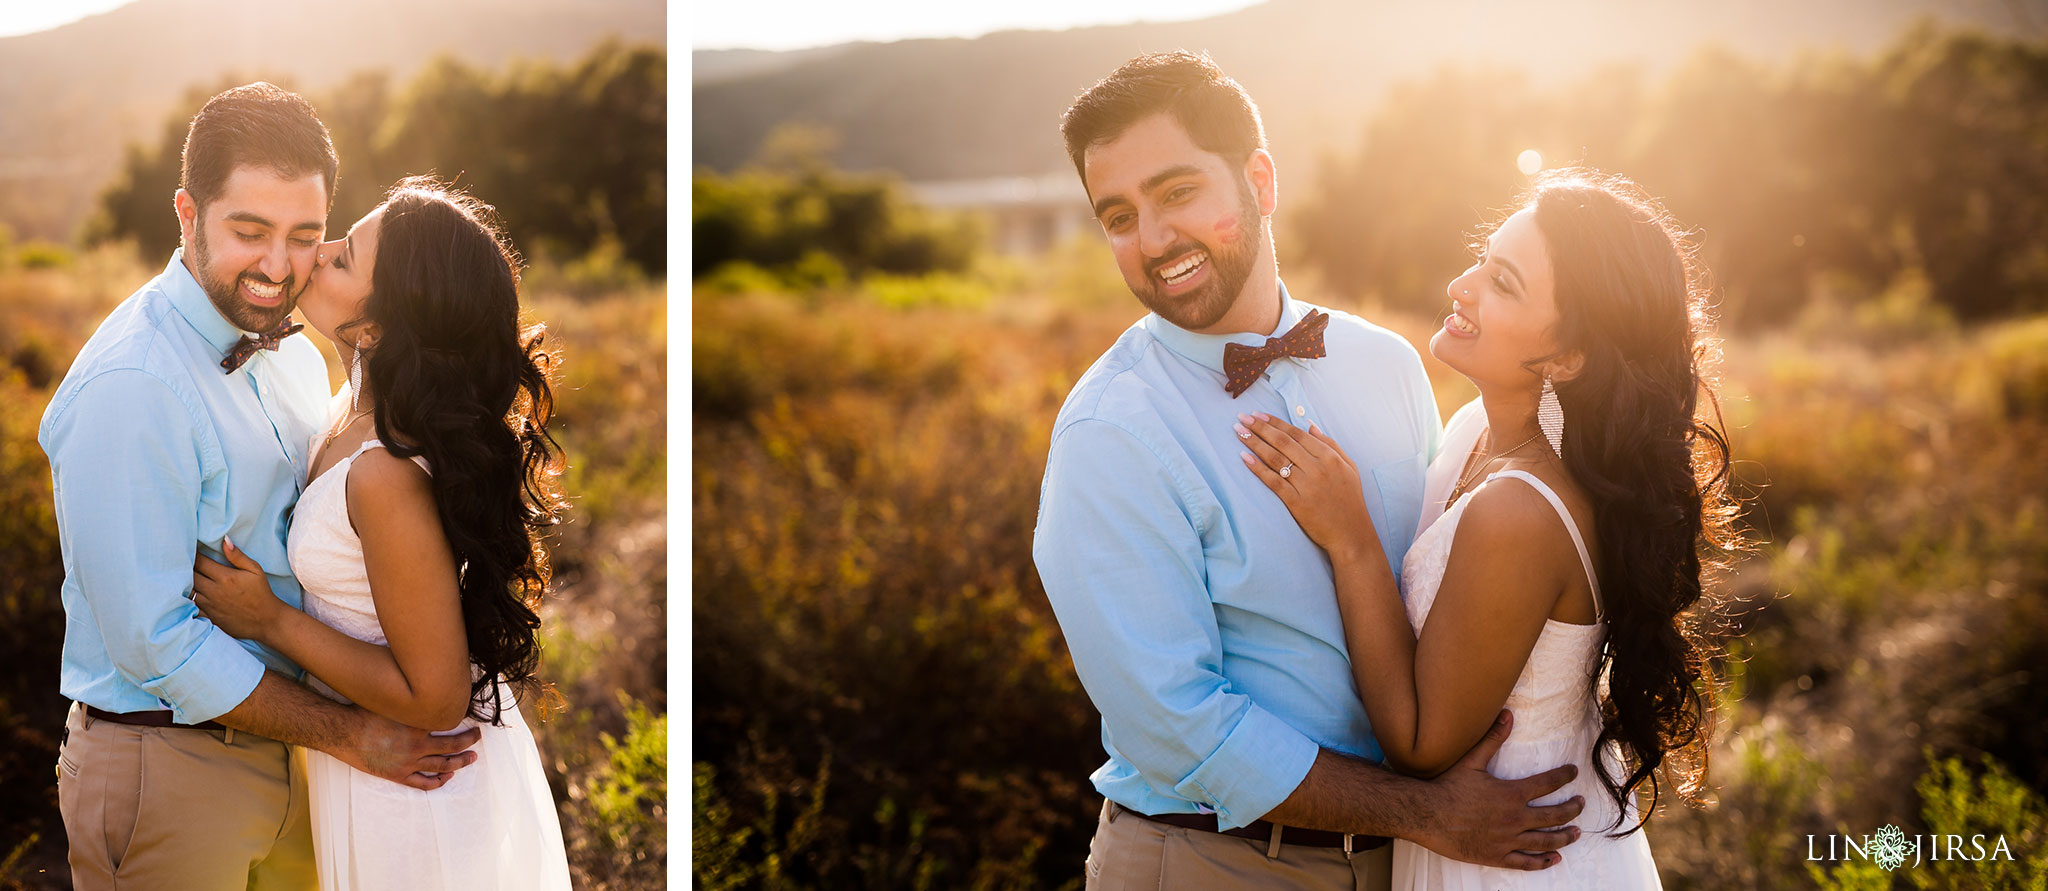 12 james dilley preserve orange county engagement photography